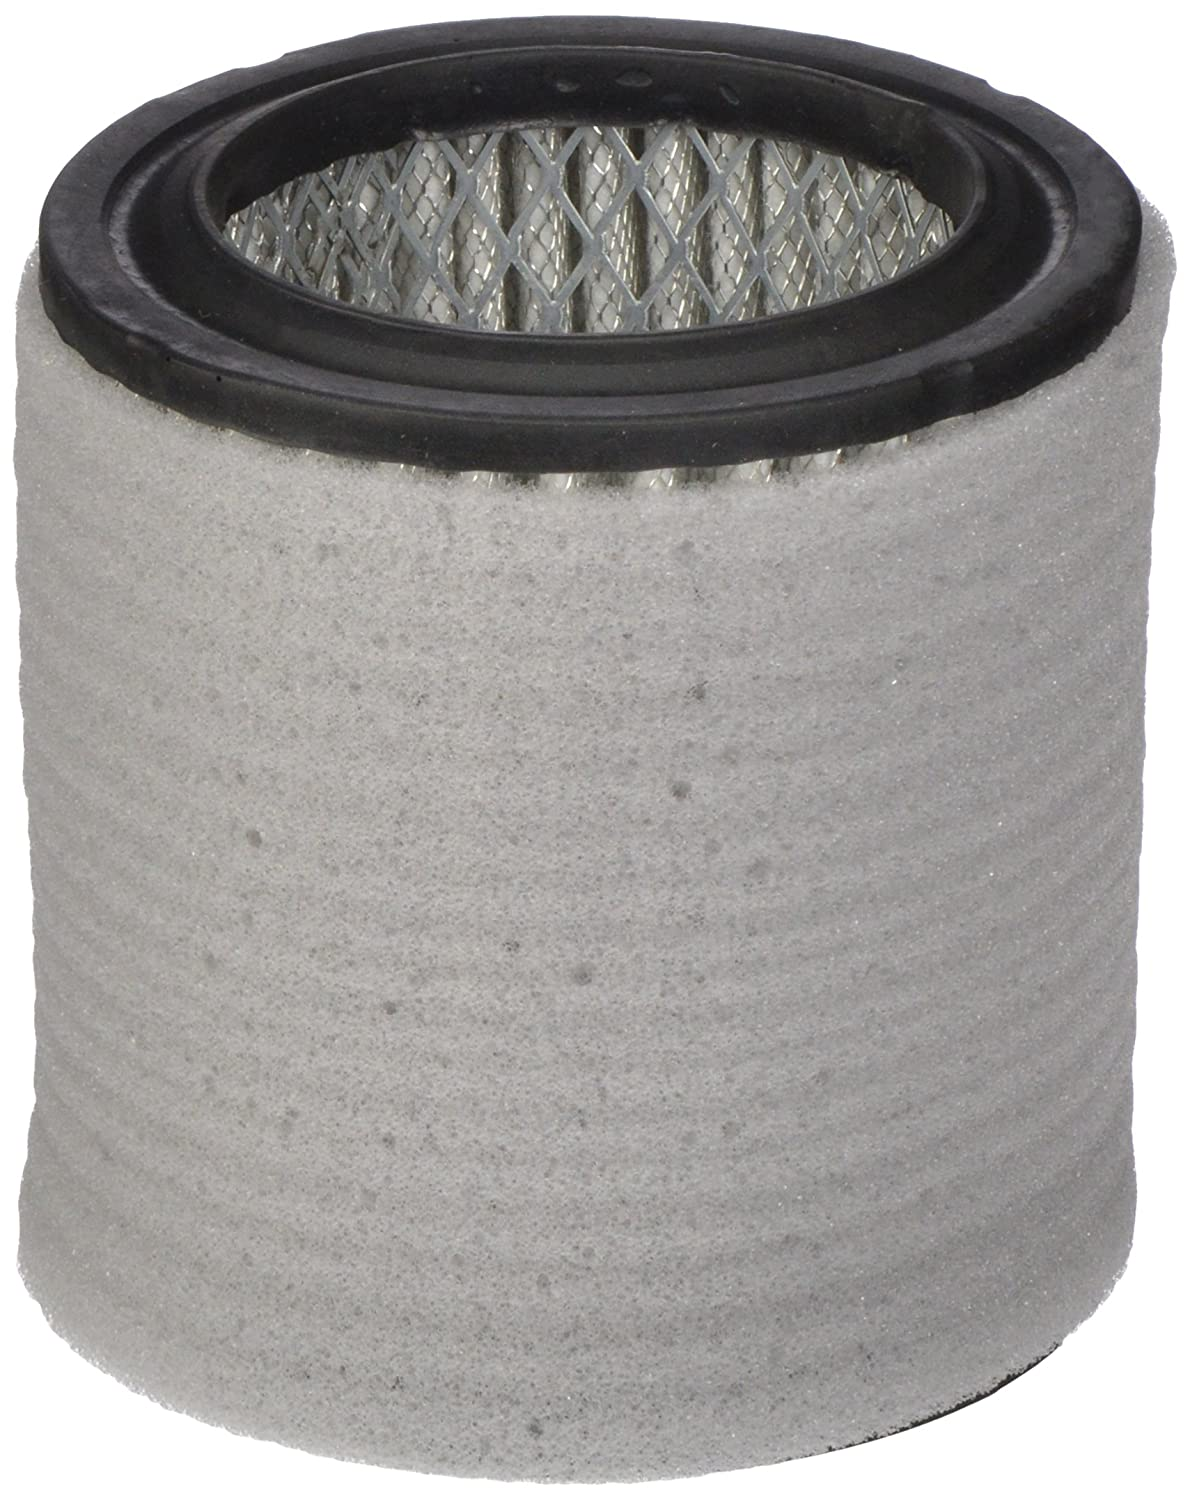 Power Roof Ventilators These Products Are Installed In A Va Such as Makeup Air Systems But Our Product Range Expands into Several Other Product Groups Filtration /& Ventilation Accessories Fantech 402041 Filter is Often Associated with Inline Duct Fans